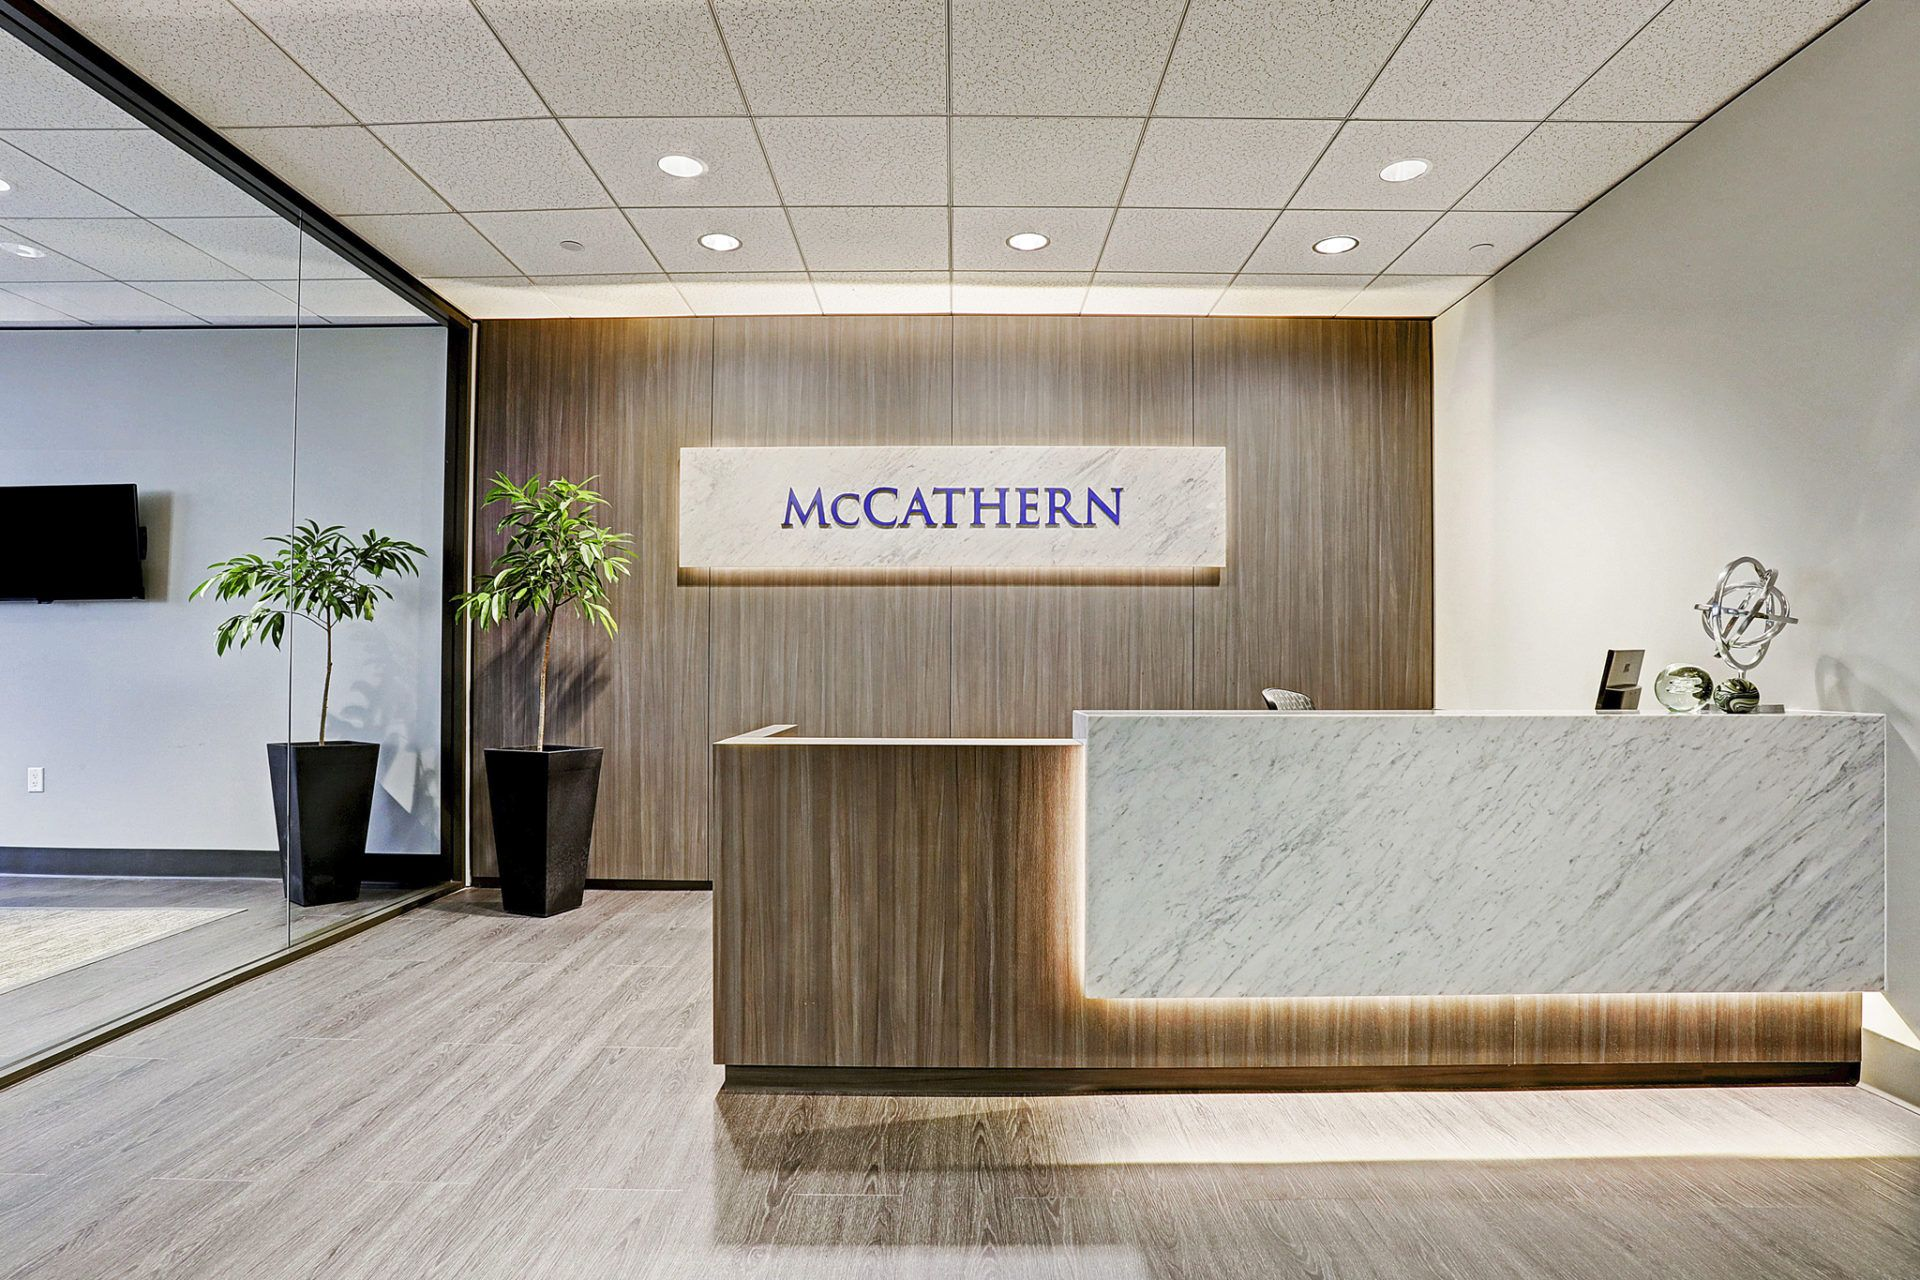 Mccathern Law Firm Interior Design Law Office Design Law Firm Design Law Firm Office